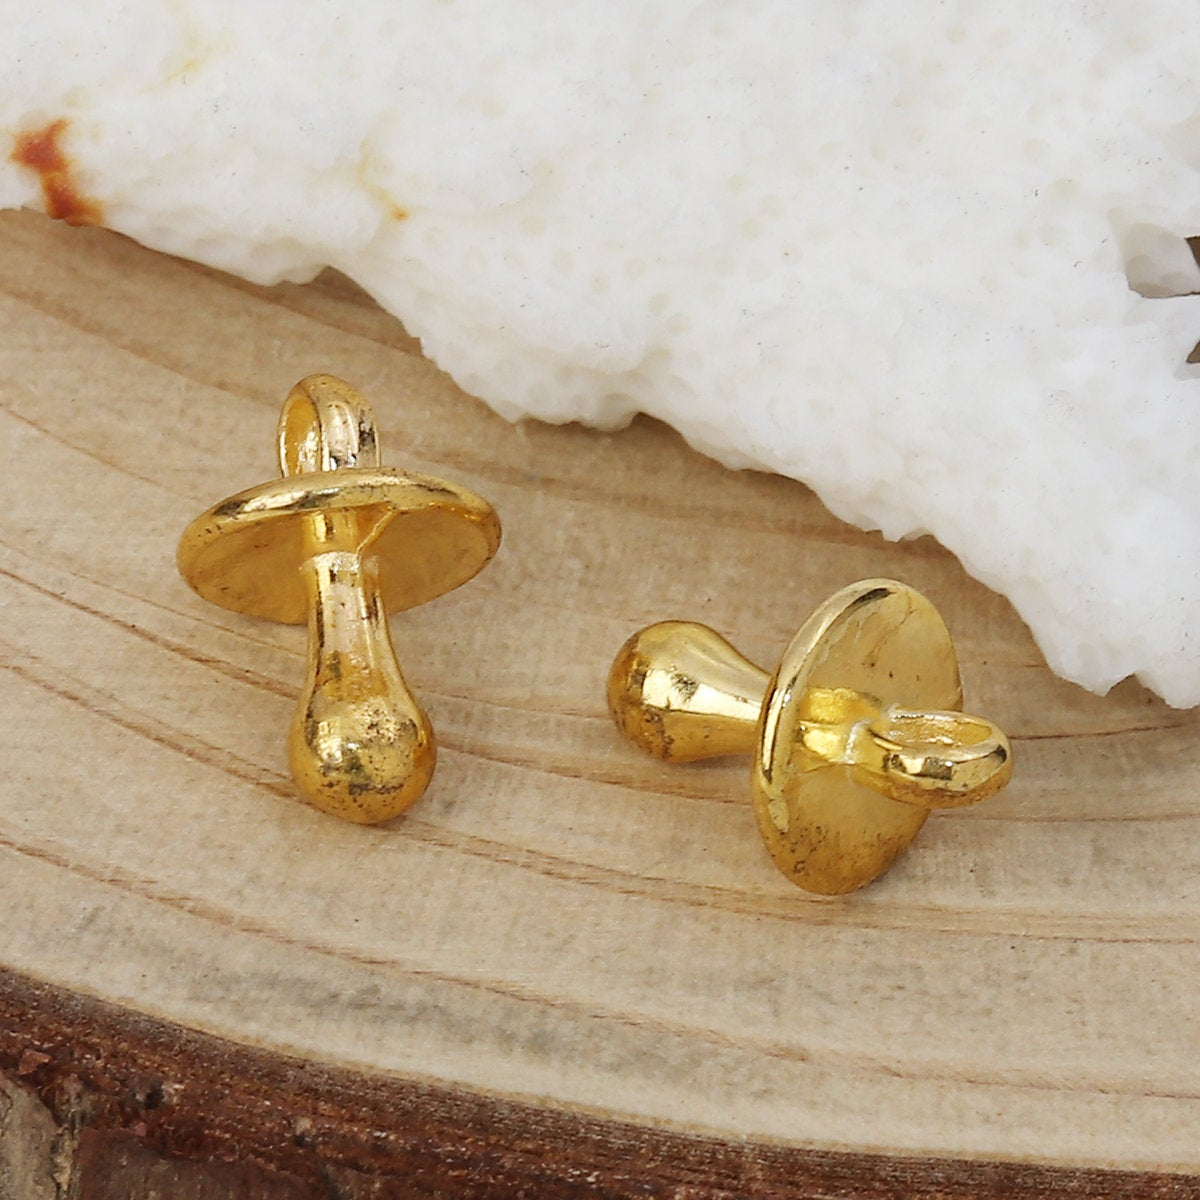 "5 Gold Plated Pacifier Baby Charm Pendant - Gold Plated - Lead and Nickel Free - 13mm x 9mm (1/2"" x 3/8"") B0112592"